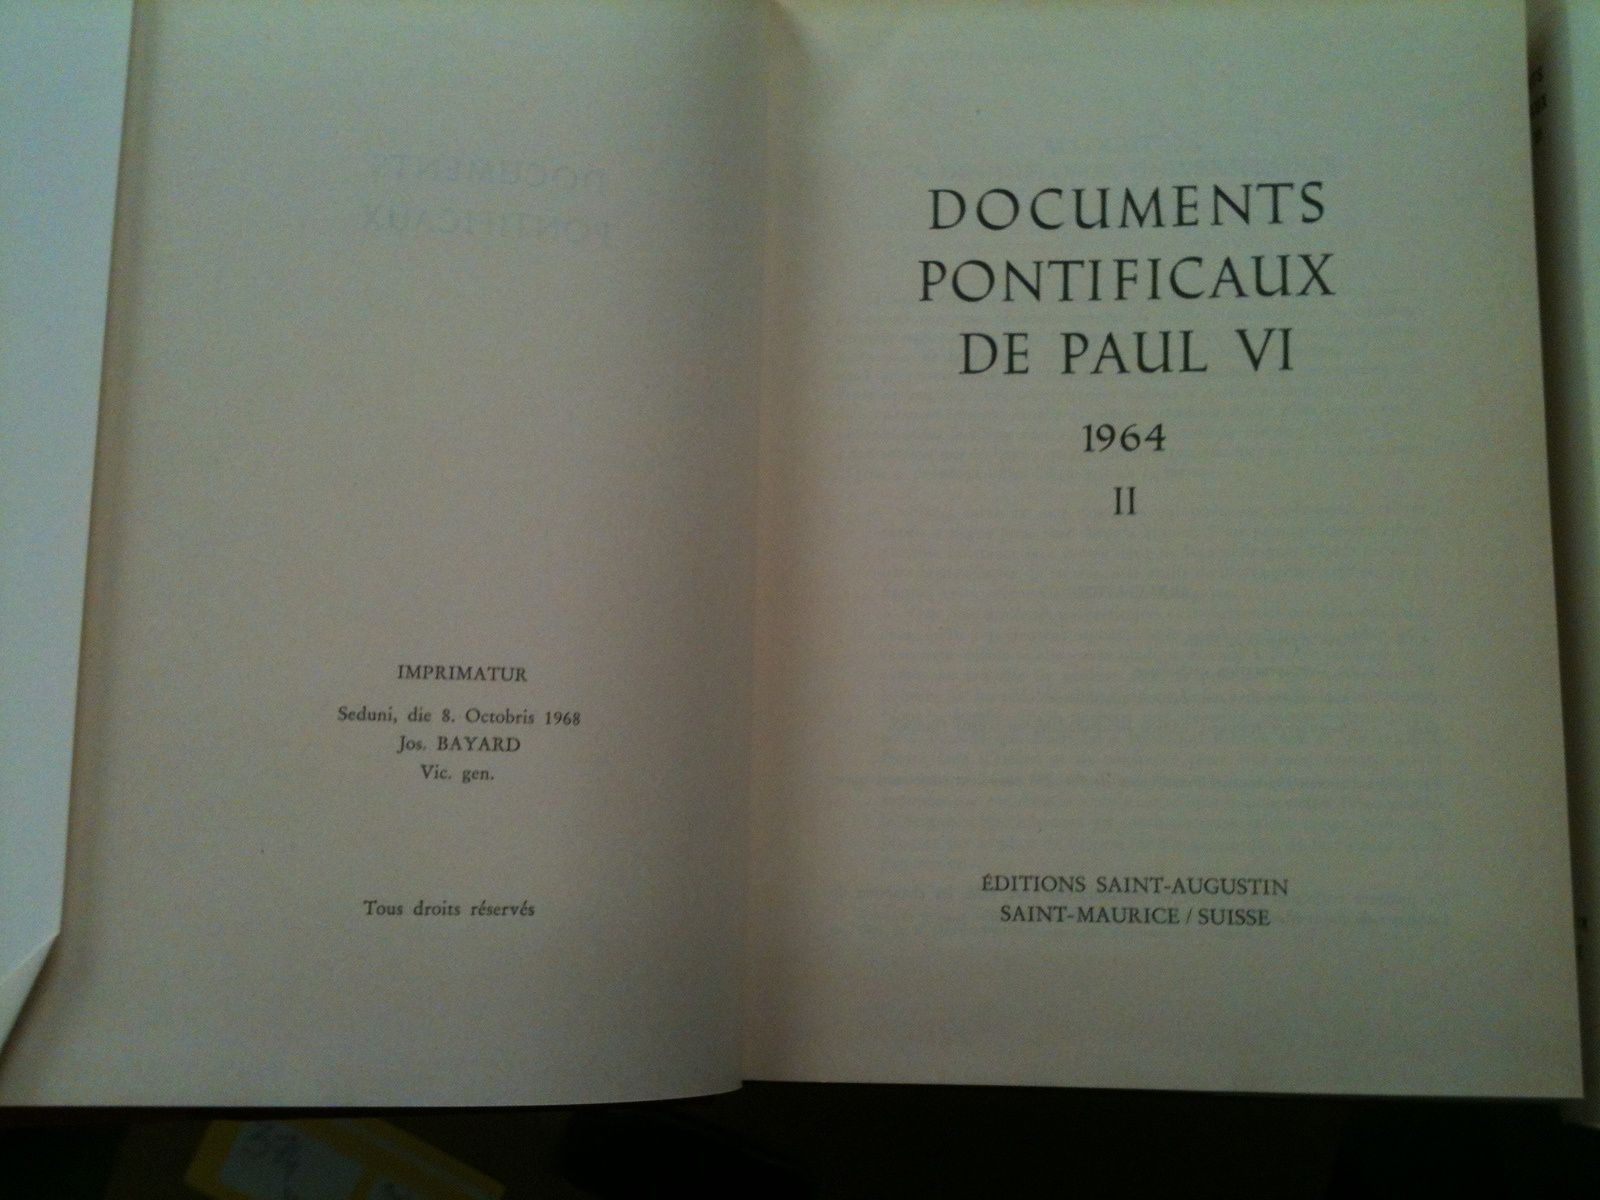 DOCUMENT PONTIFICAUX DE PAUL VI EDITION SAINT -AUGUSTIN 17 LOLUMES TRES BON ETAT PRIX  180€ PORT POSSIBLE 10€